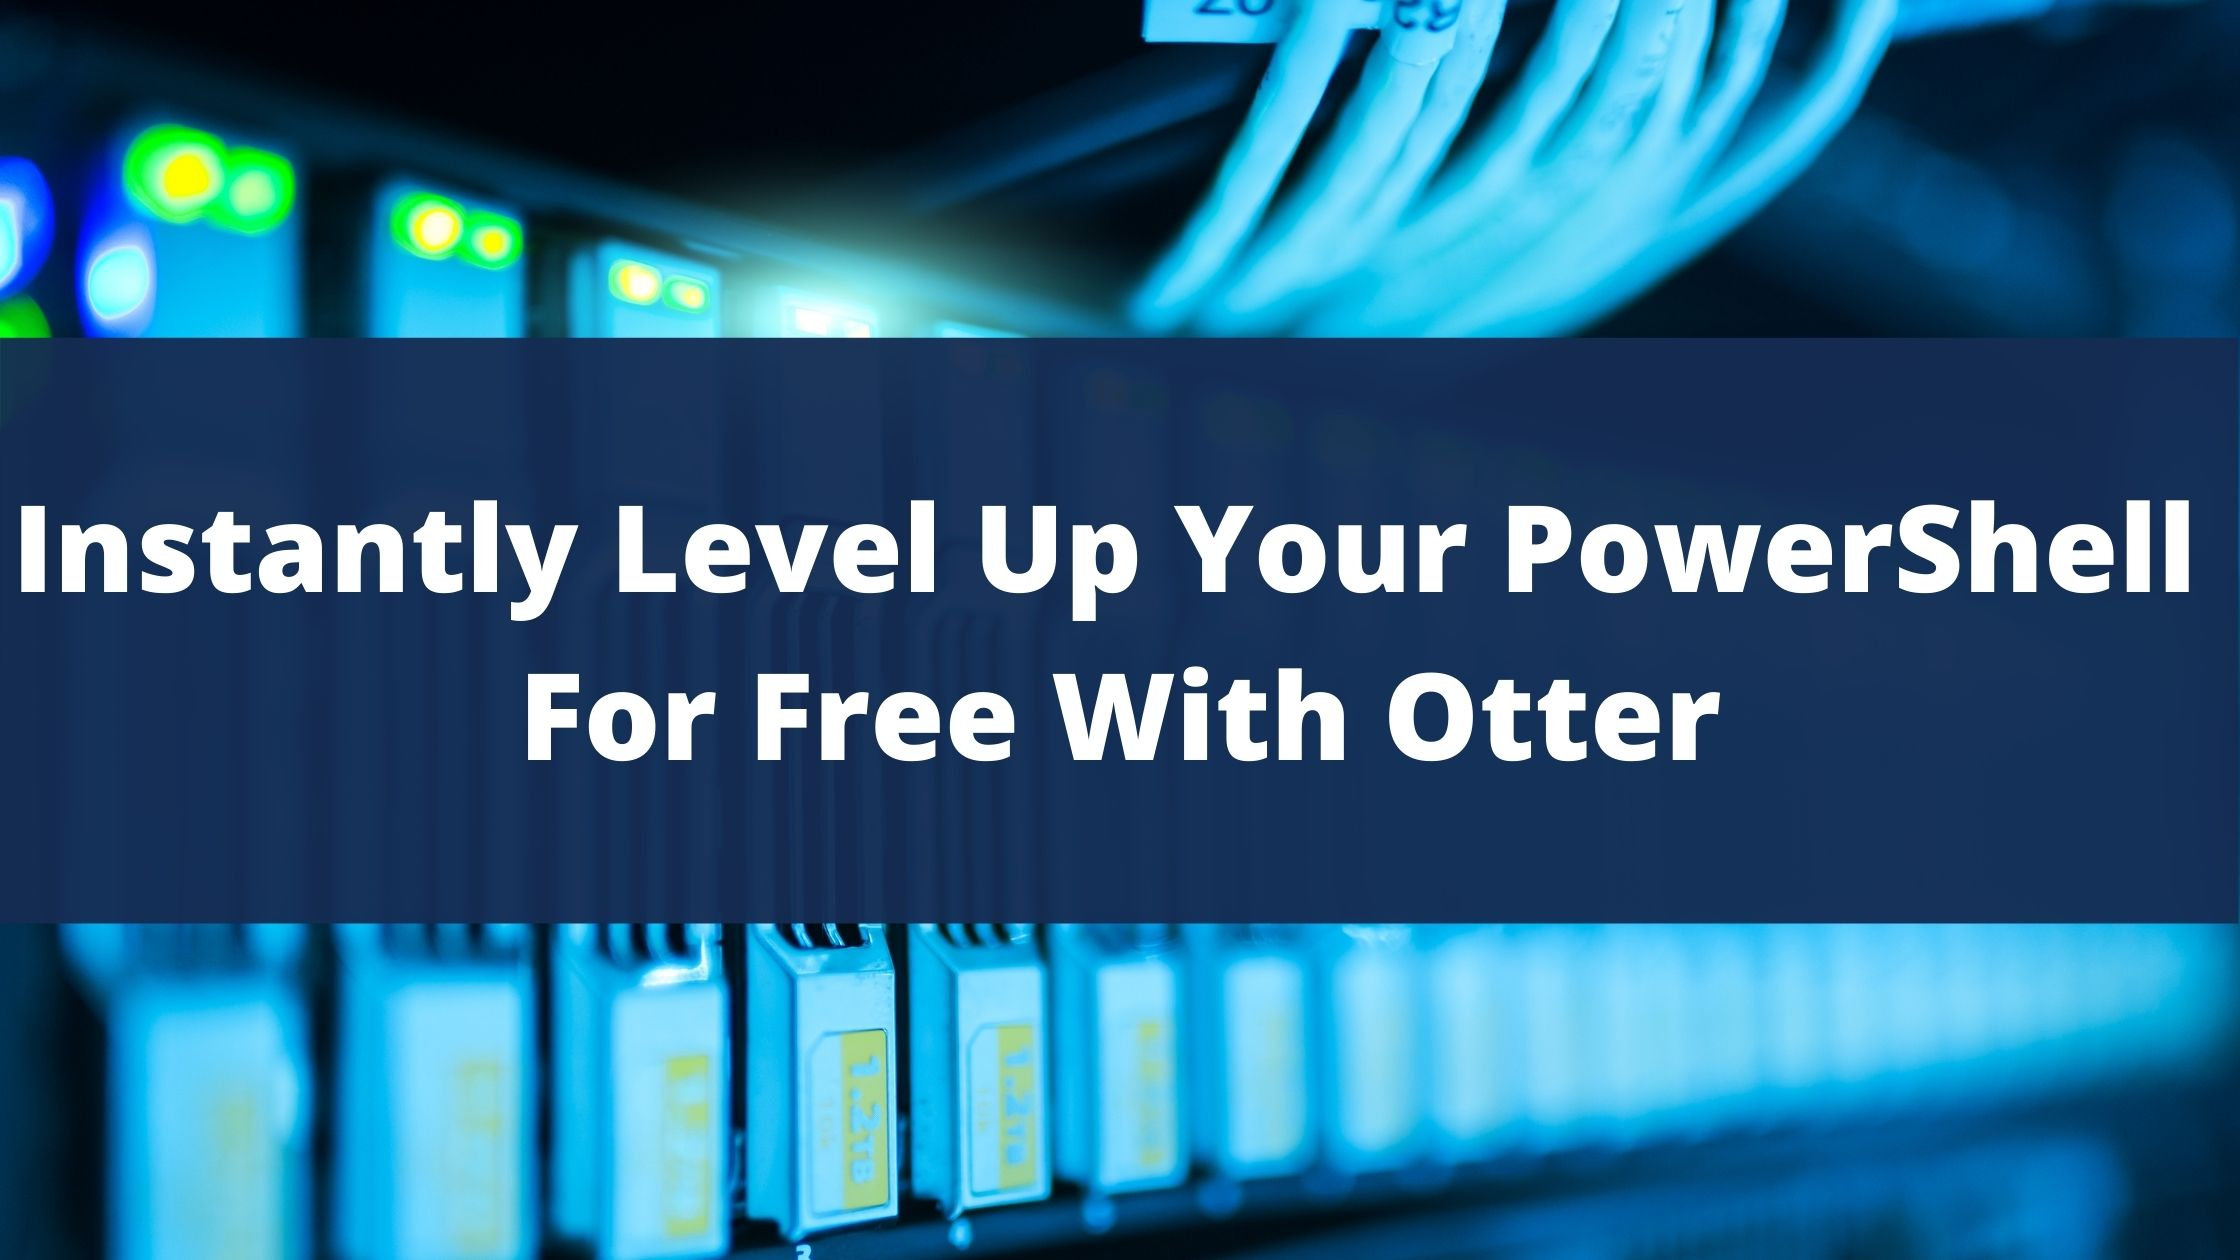 Use Otter to Level Up Your PowerShell For Free